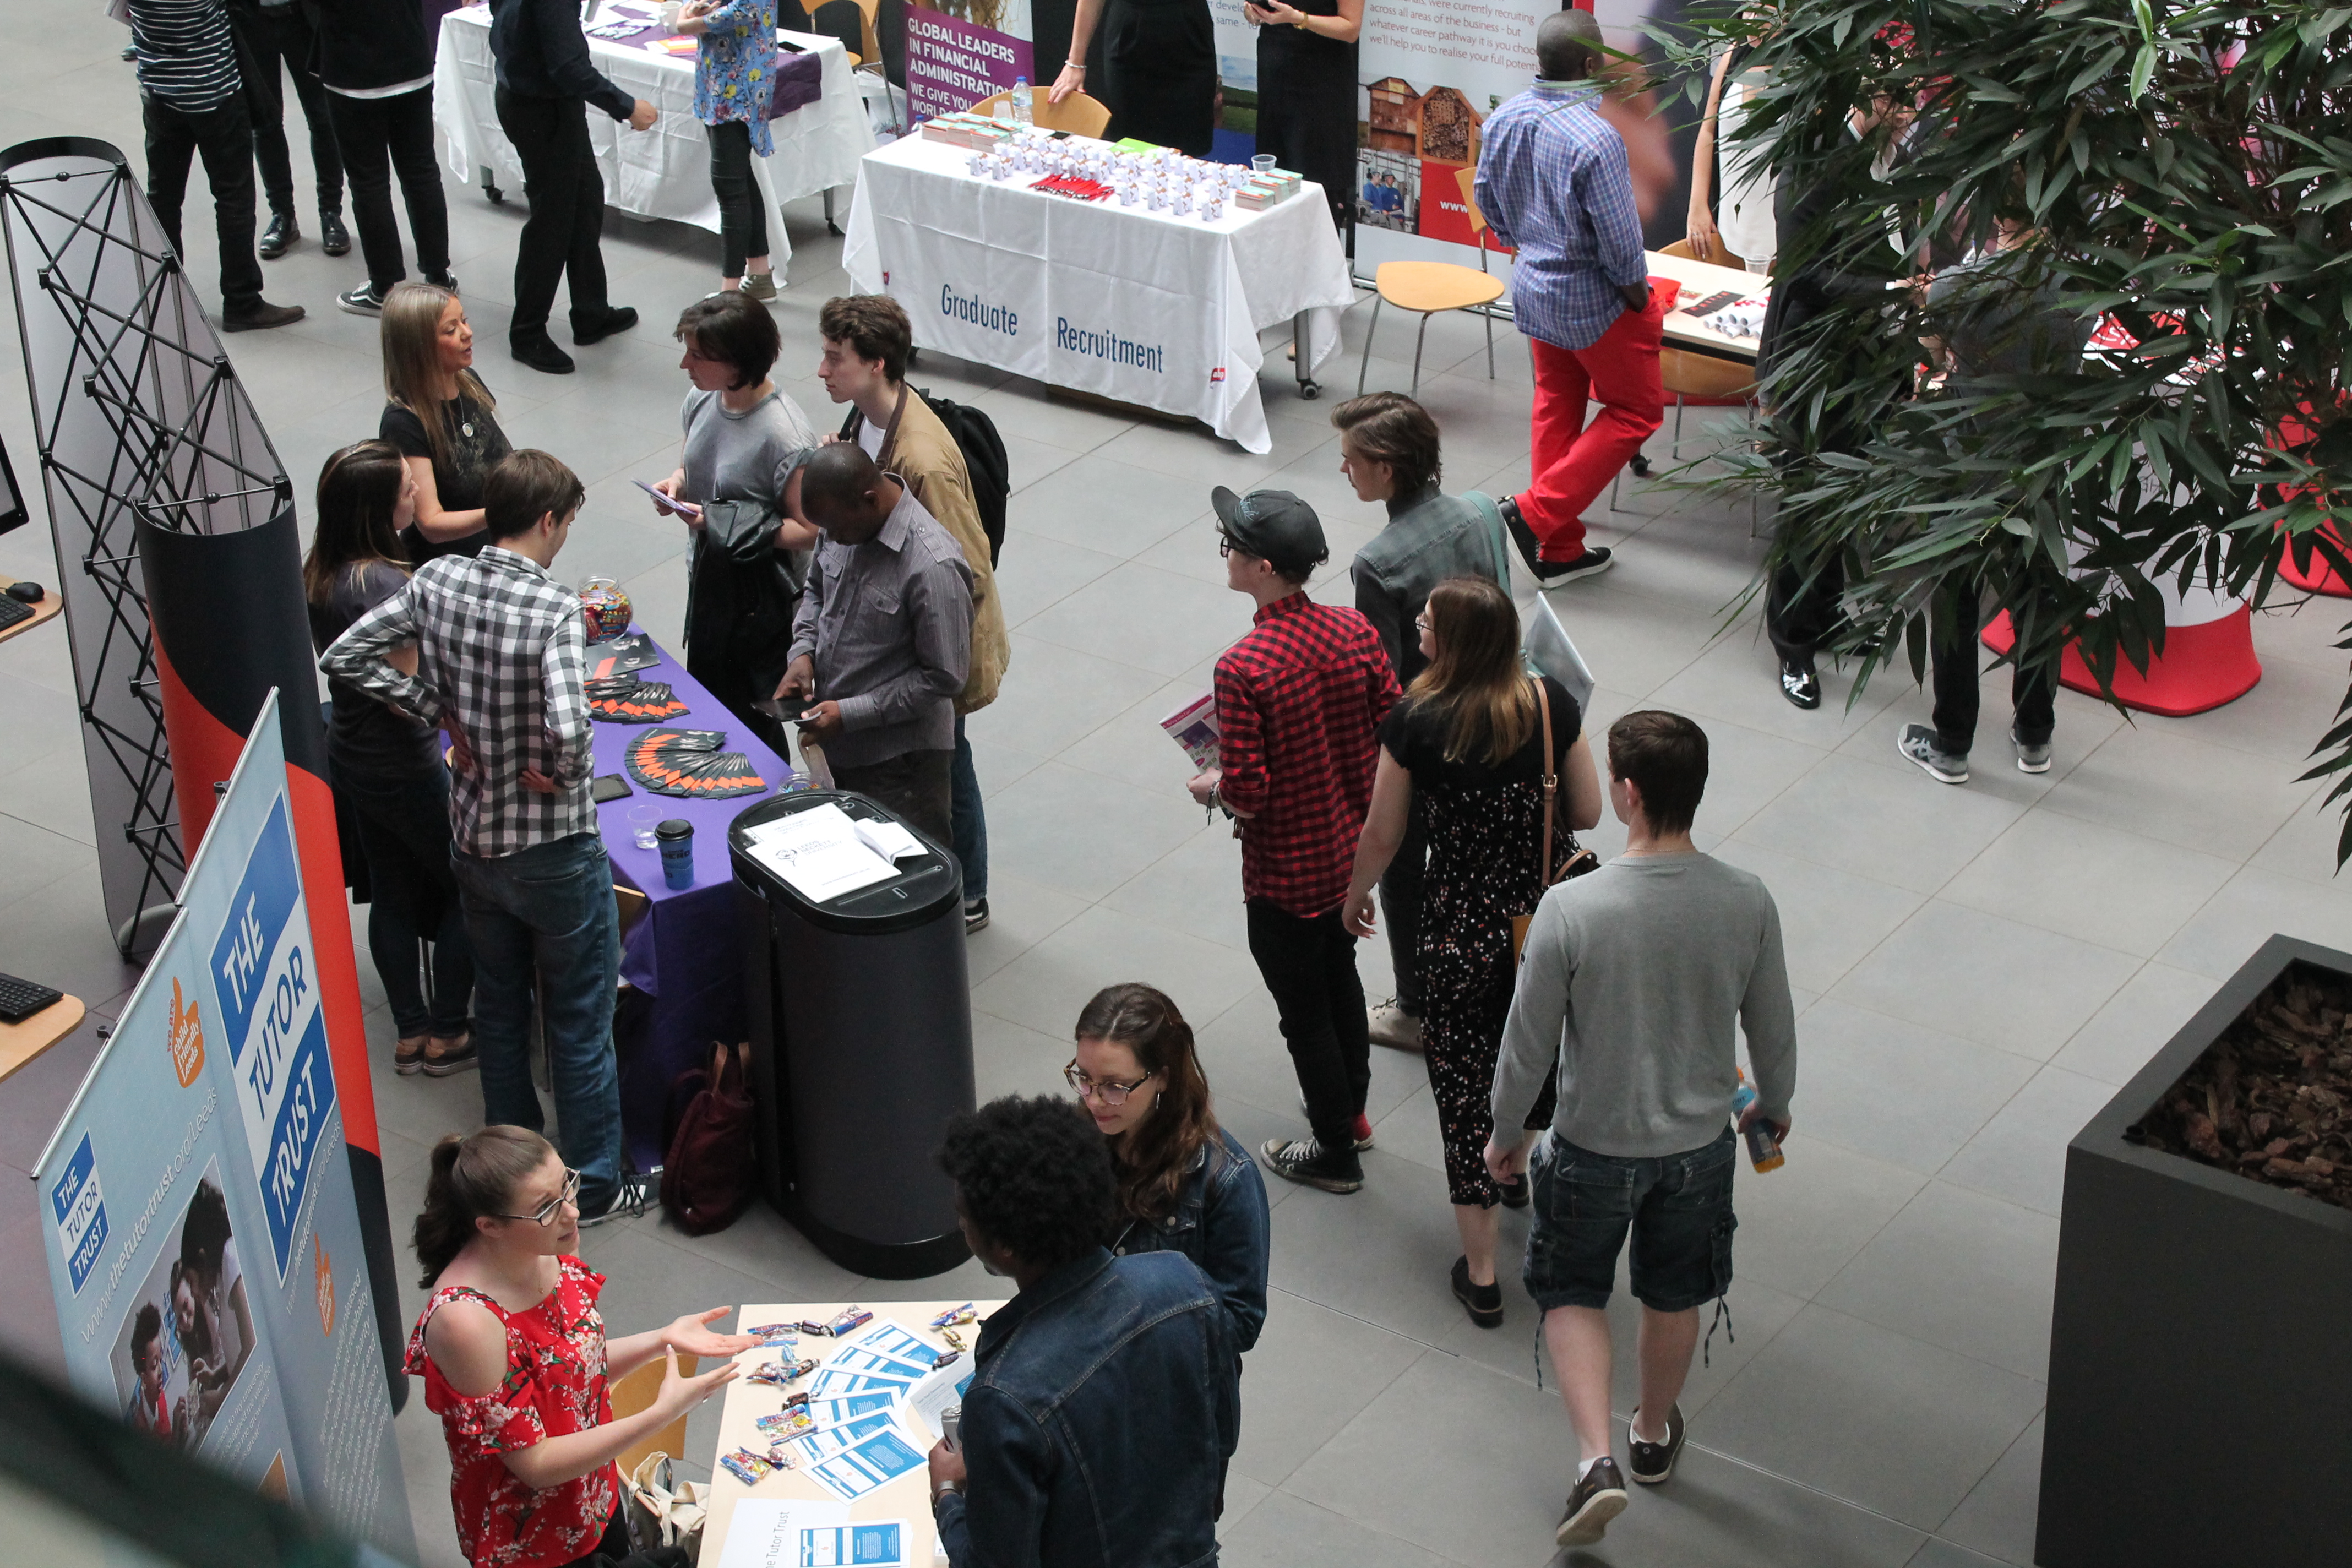 People at a careers fair